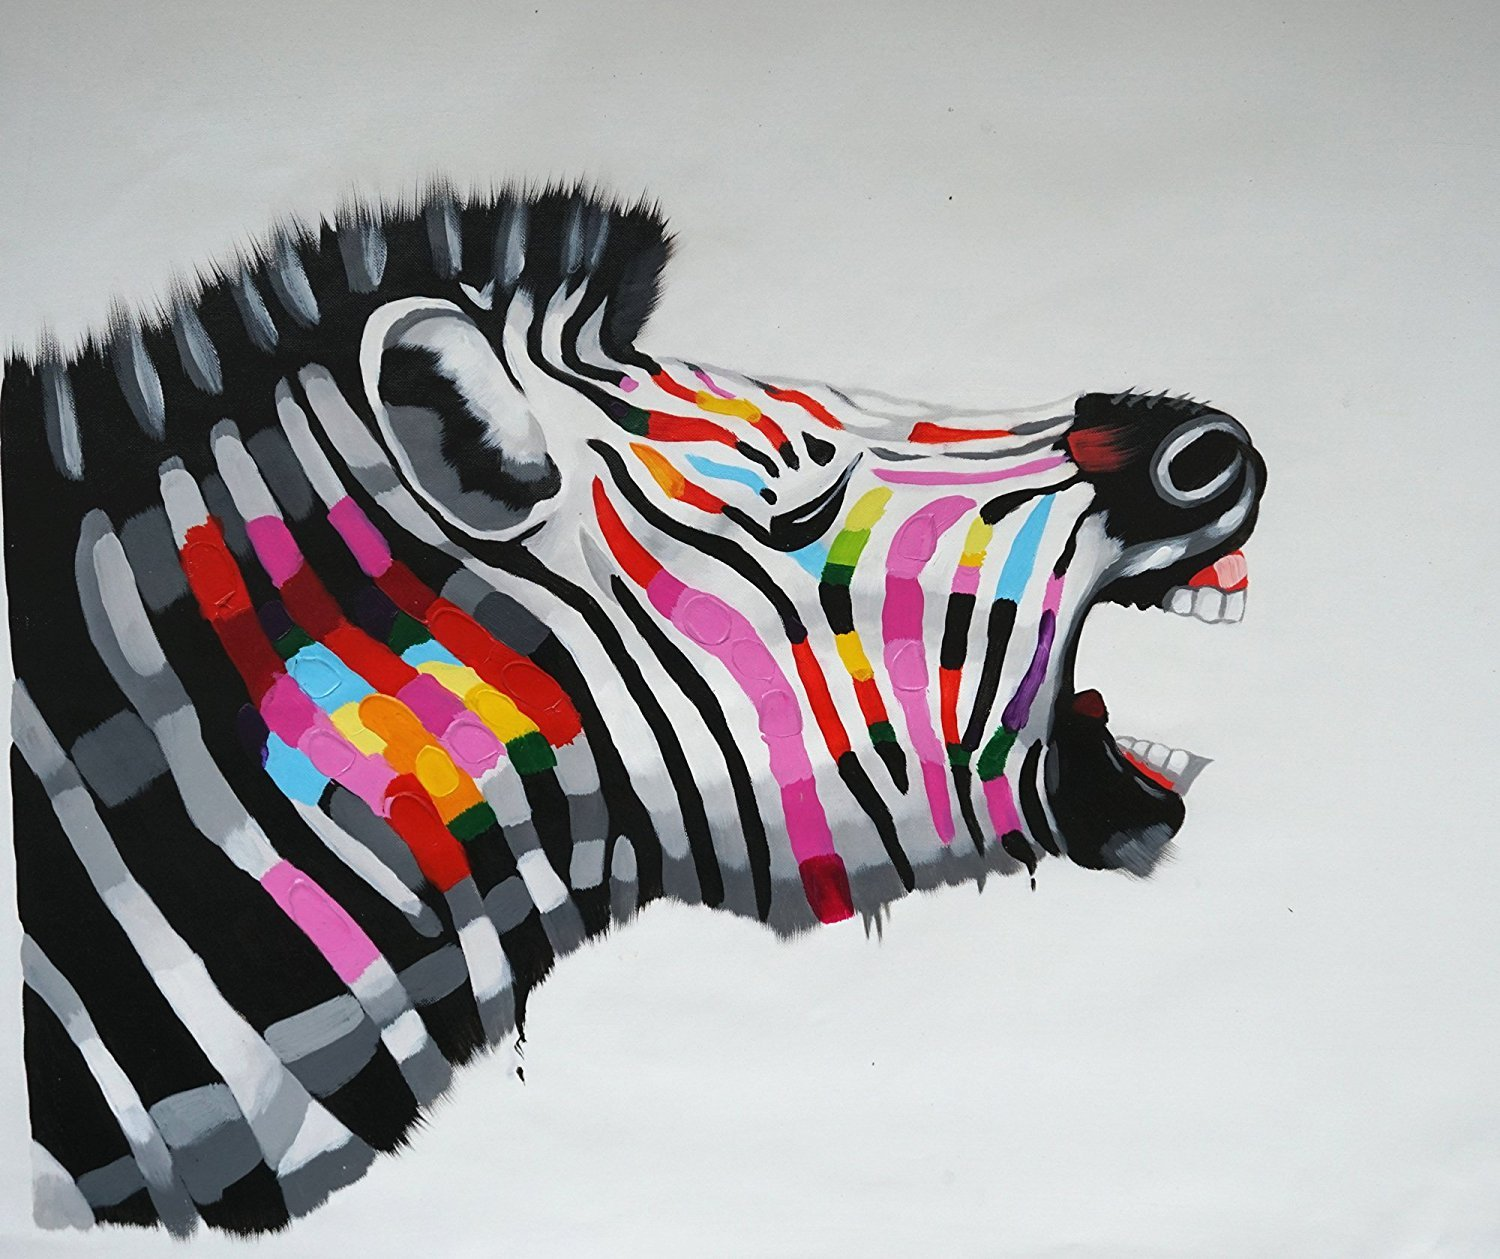 Mrsrui Animal Canvas Oil Hand Painted Hot Zebra Wall Art Decoration 100% Handmade For Living Room Bedroom Office 20x20inch (50x50cm)